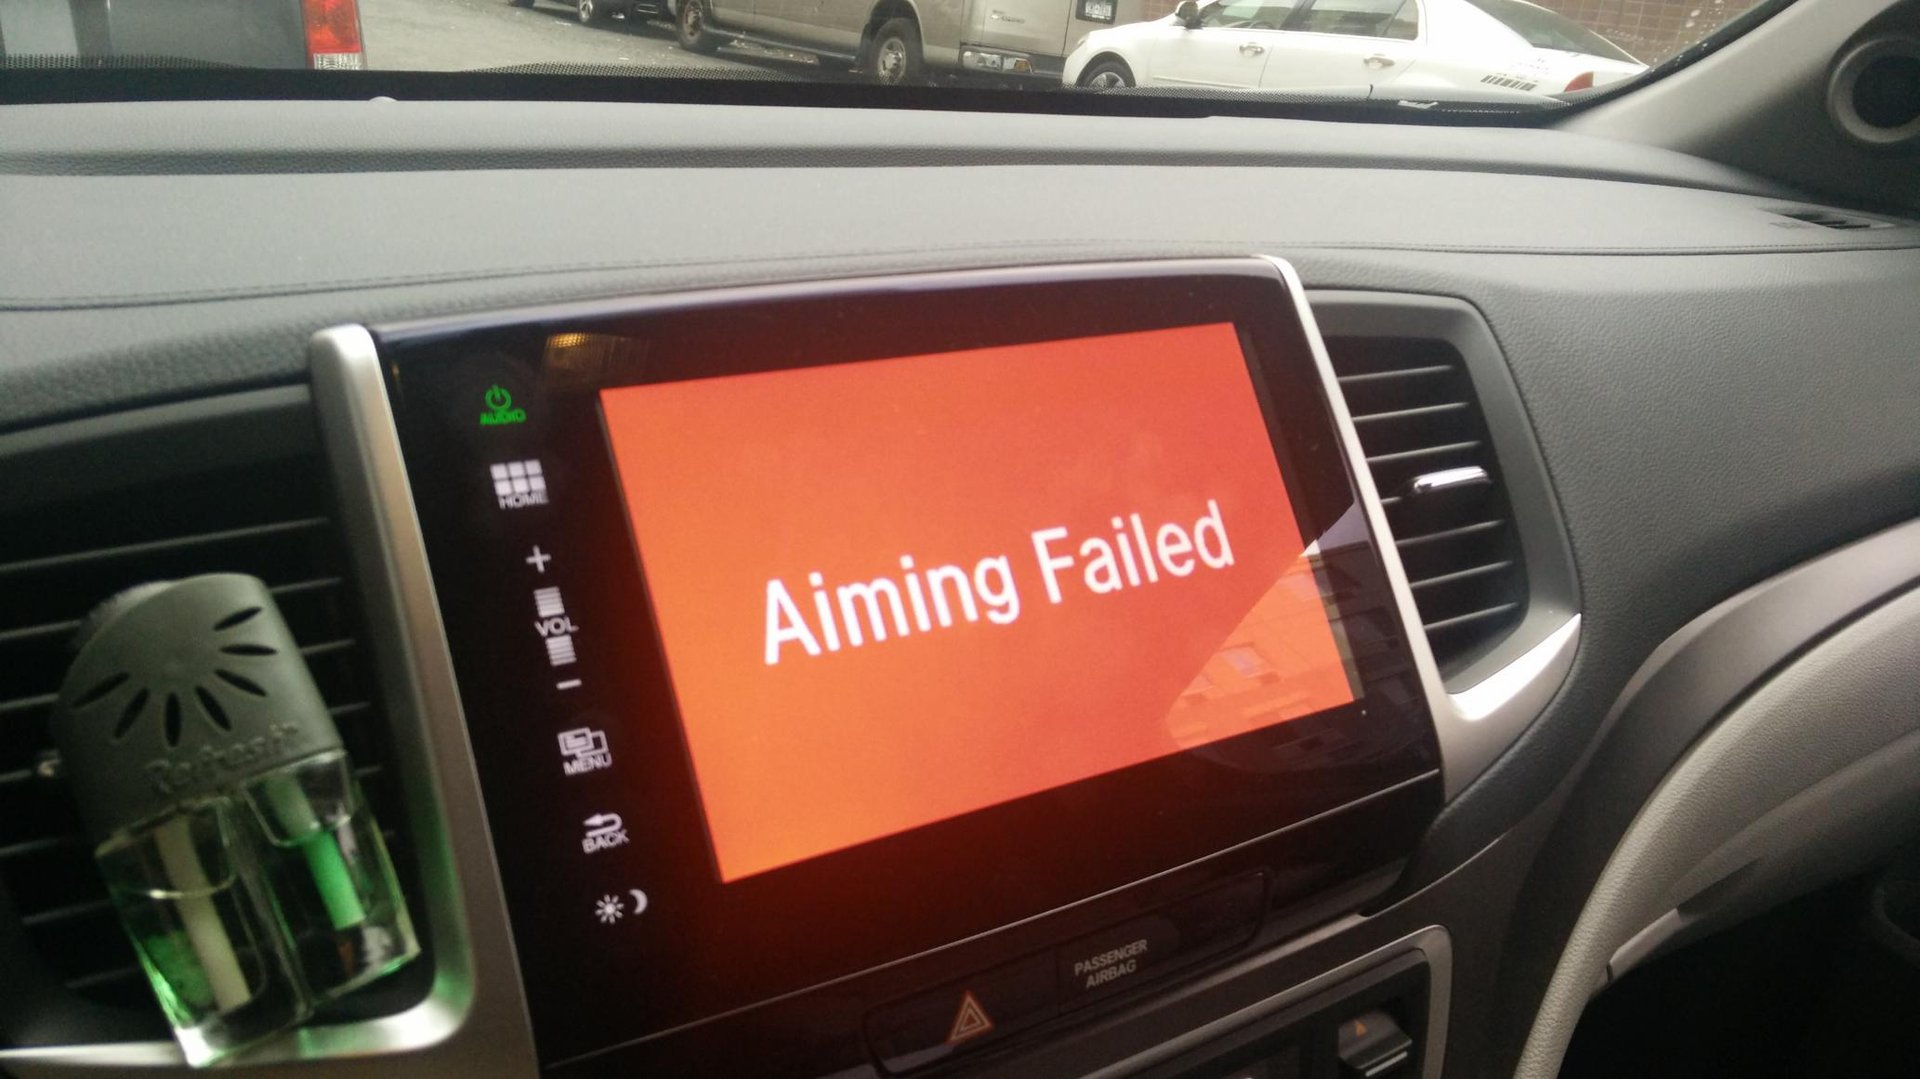 Lanewatch aiming failed | Honda Pilot - Honda Pilot Forums